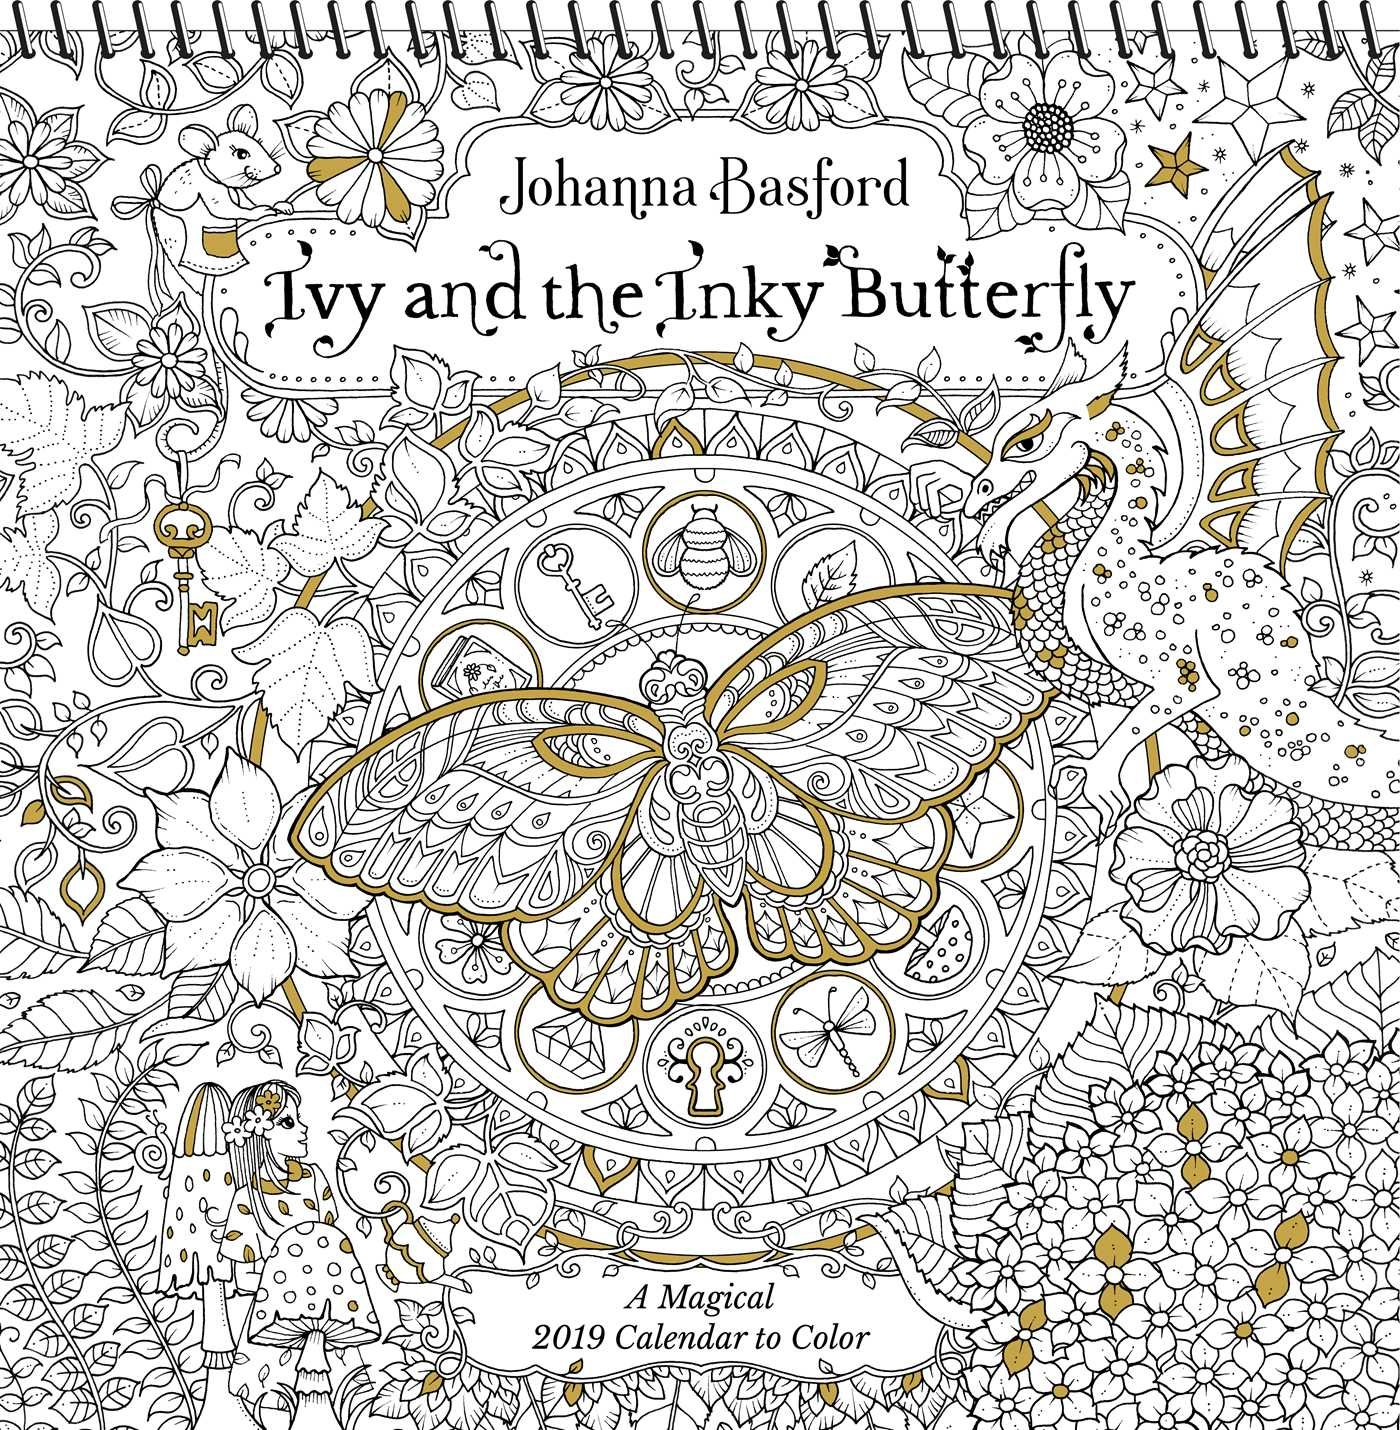 ivy and the inky butterfly 2019 coloring wall calendar a magical 2019 calendar to color johanna basford 9781449492458 amazoncom books